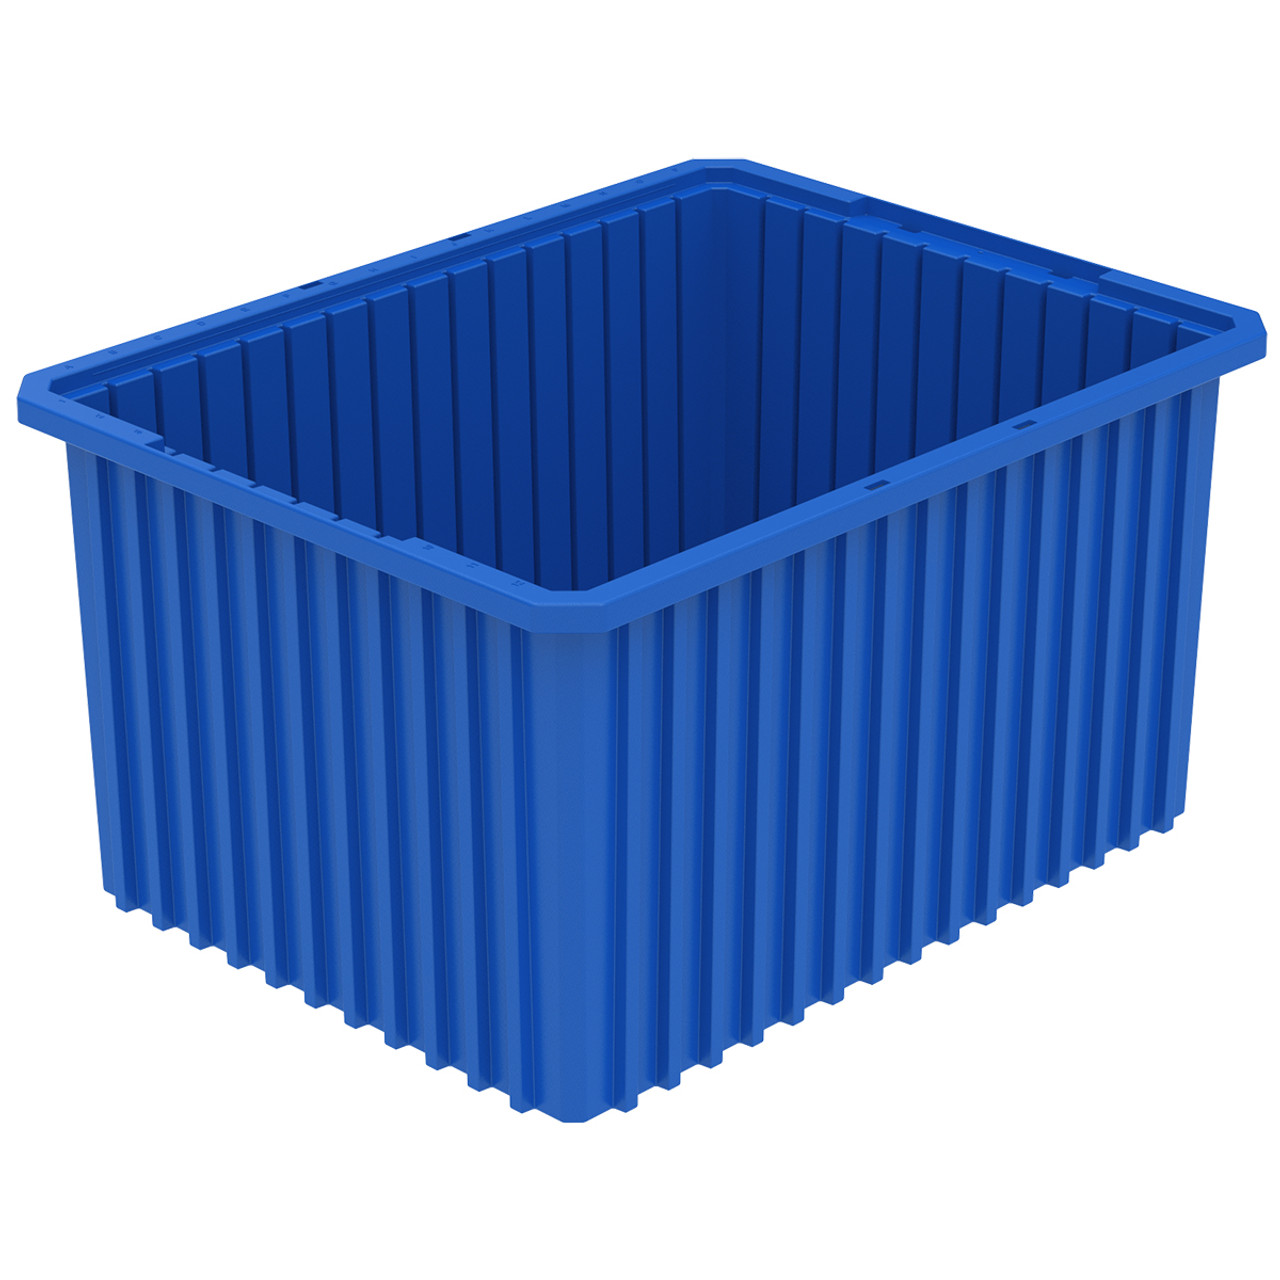 Grid Box, Akro-Grid  Box 22-1/2 x 17-1/2 x 12  33222BLUE